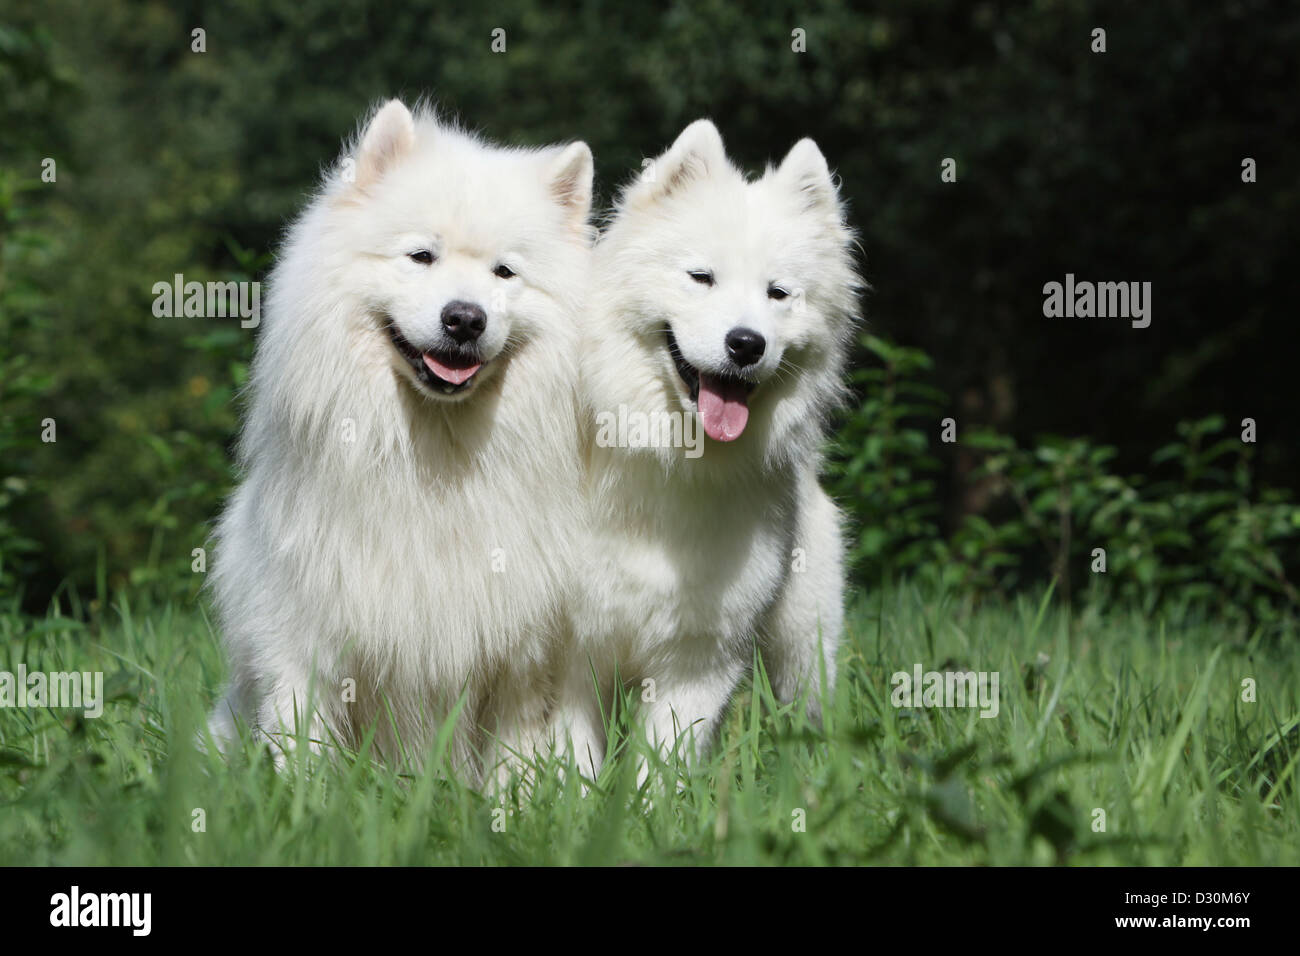 Dog Samoyed / Samojede two adults in a meadow Stock Photo